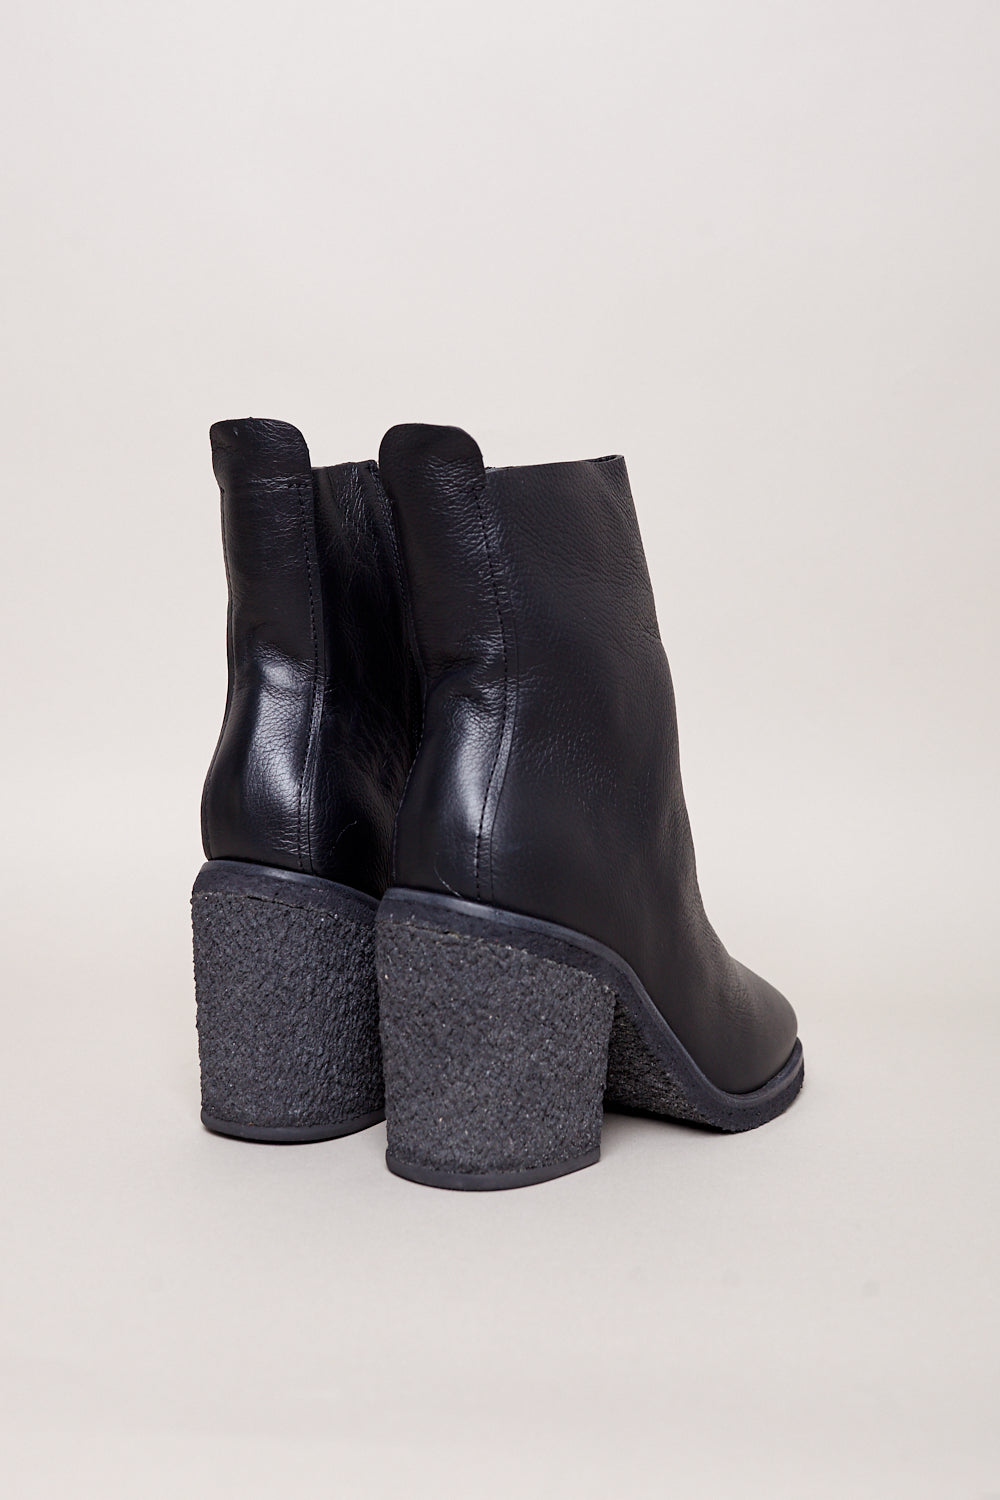 Wal and Pai Briggs Ankle Boot in Black Calf - Vert & Vogue